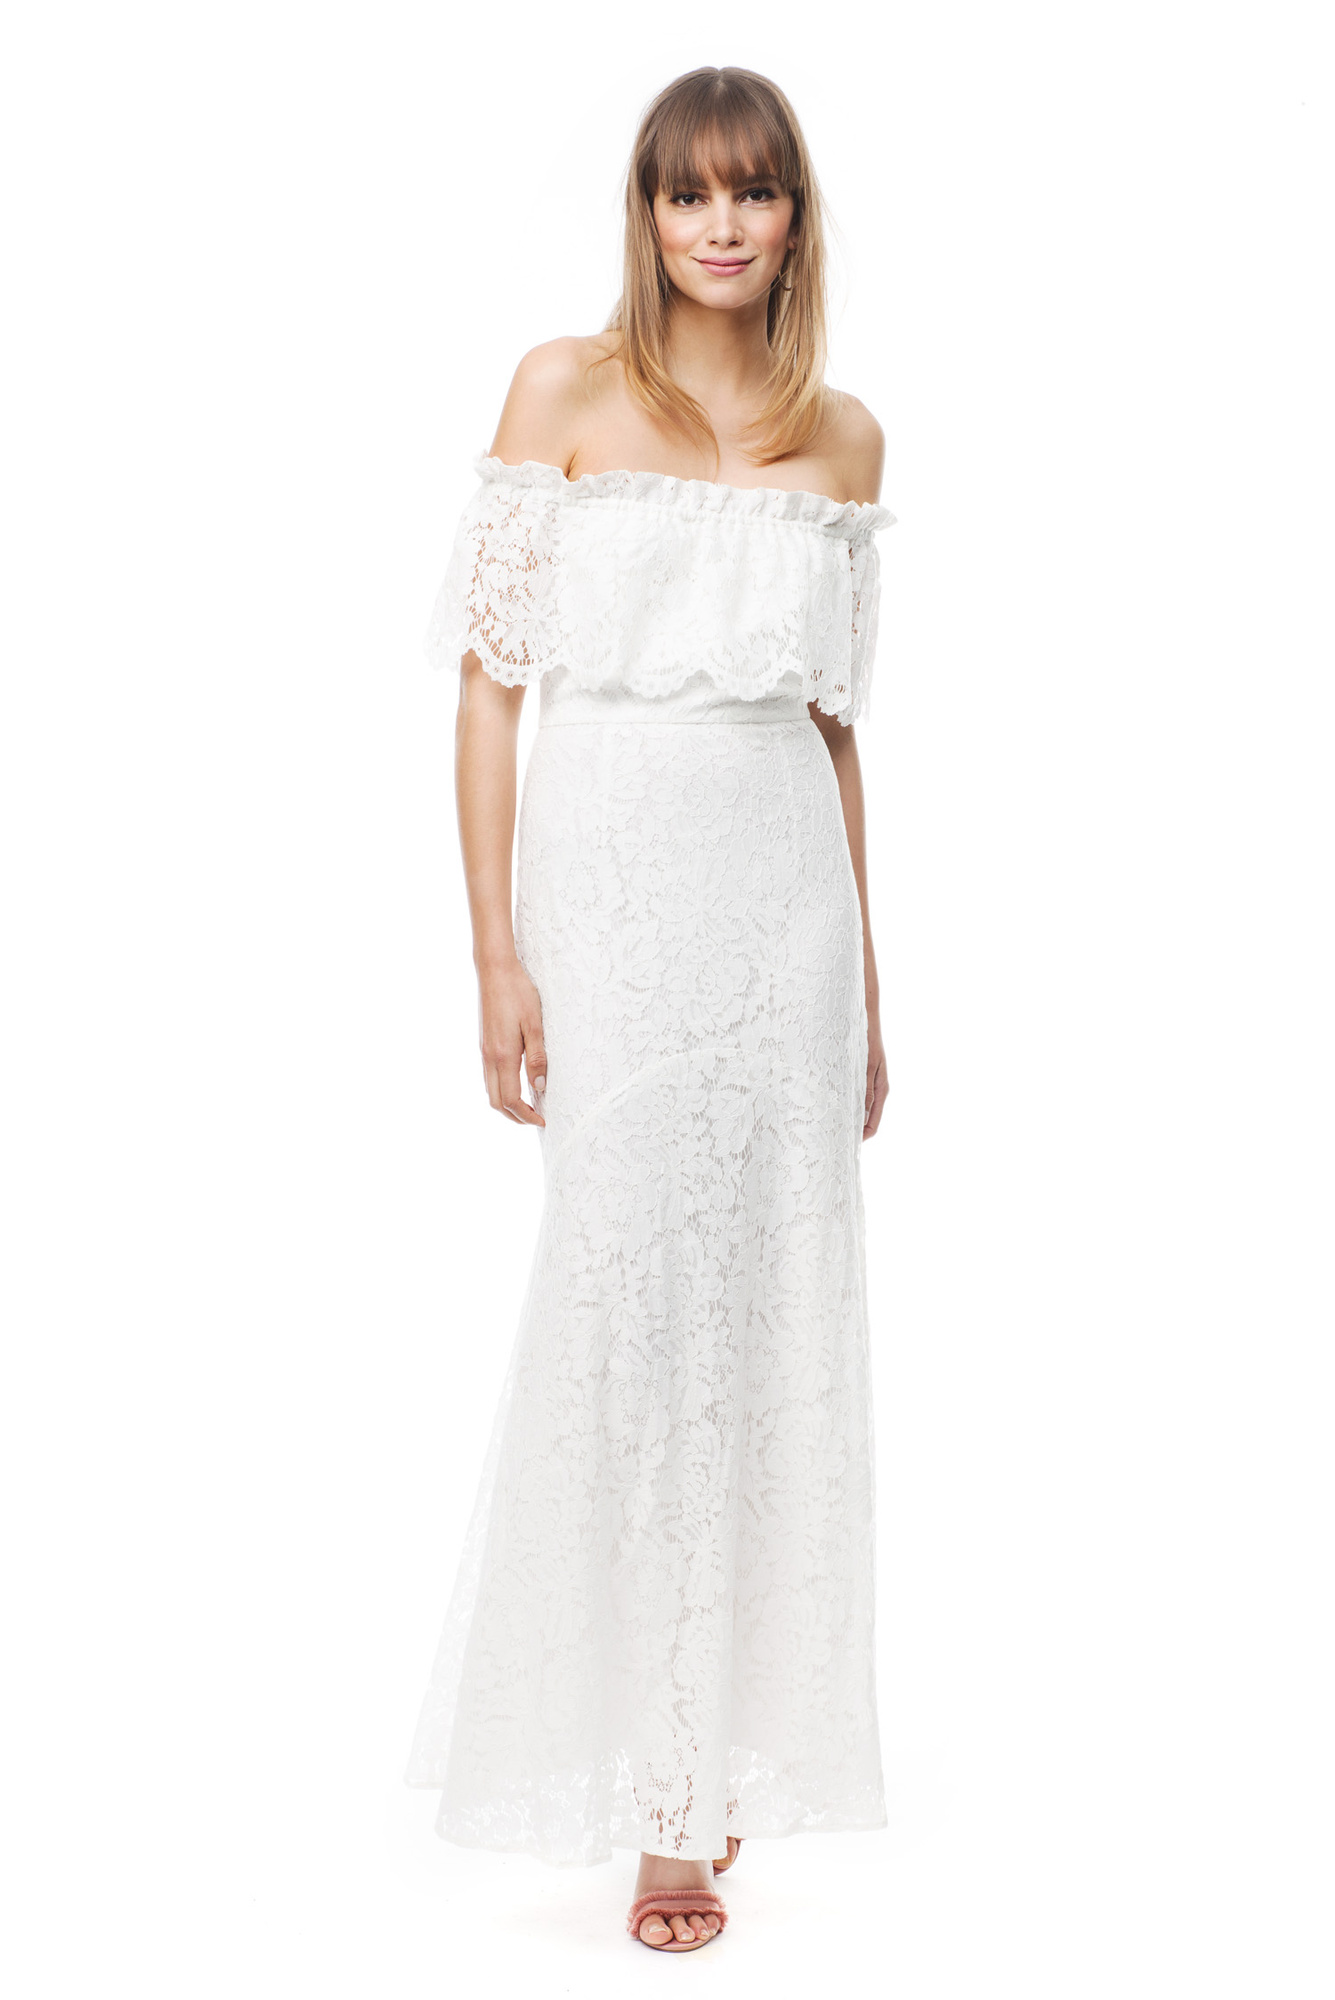 Serafina maxi - By Malina Official   Designer Clothing & Accessories